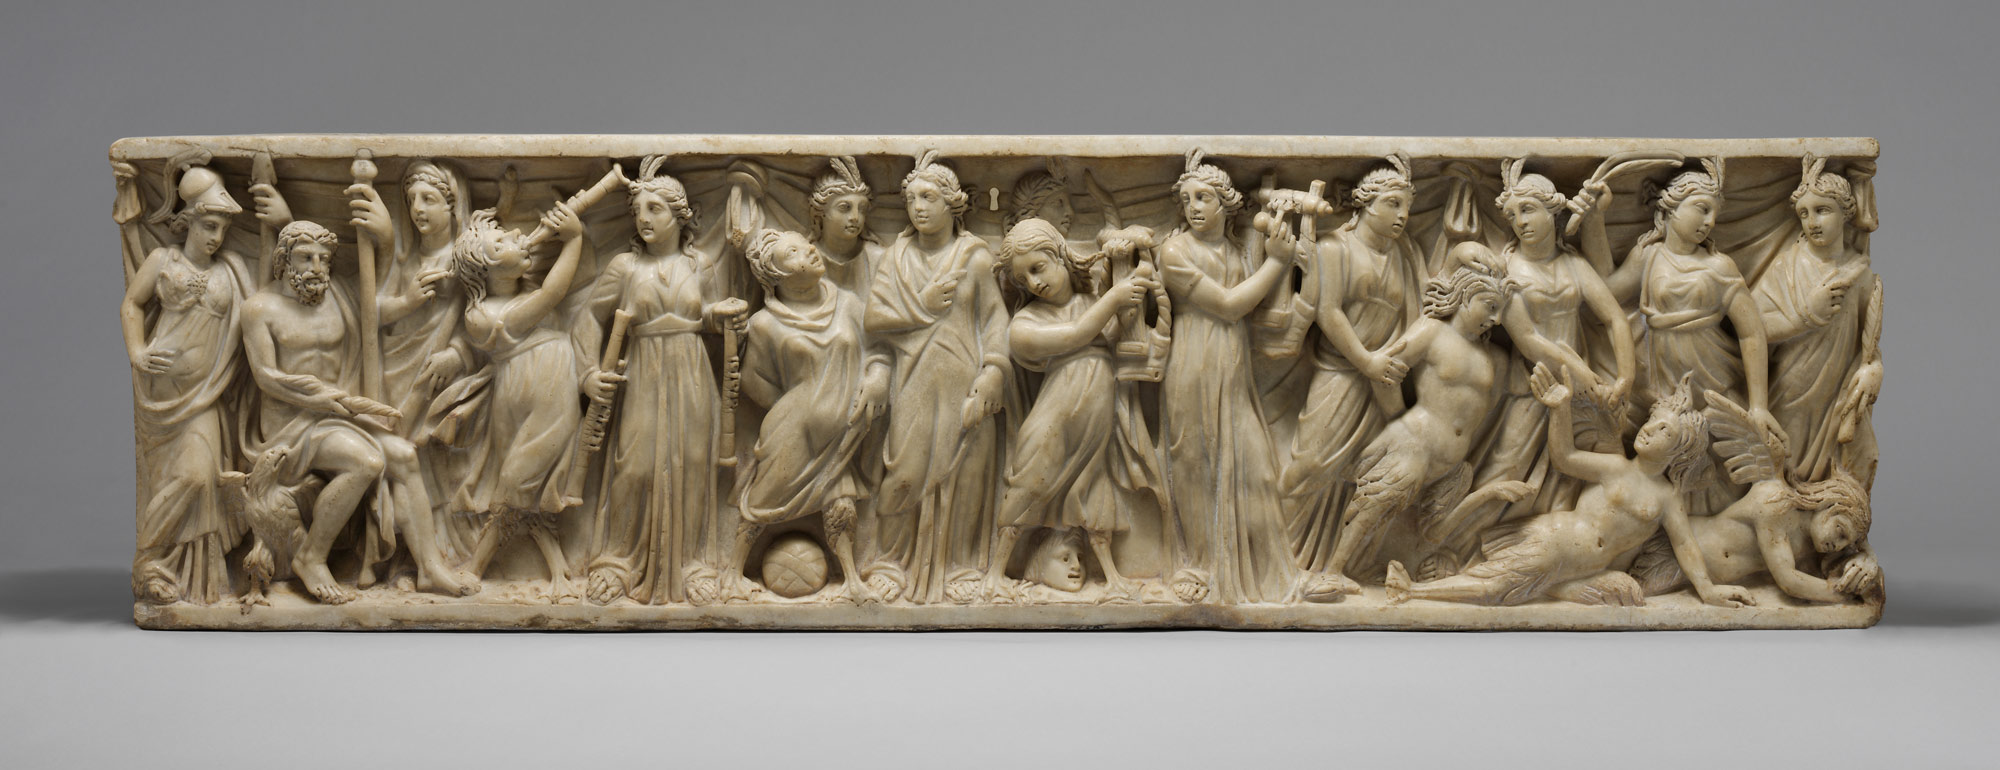 Sarcophagus with the contest between the Muses and the Sirens